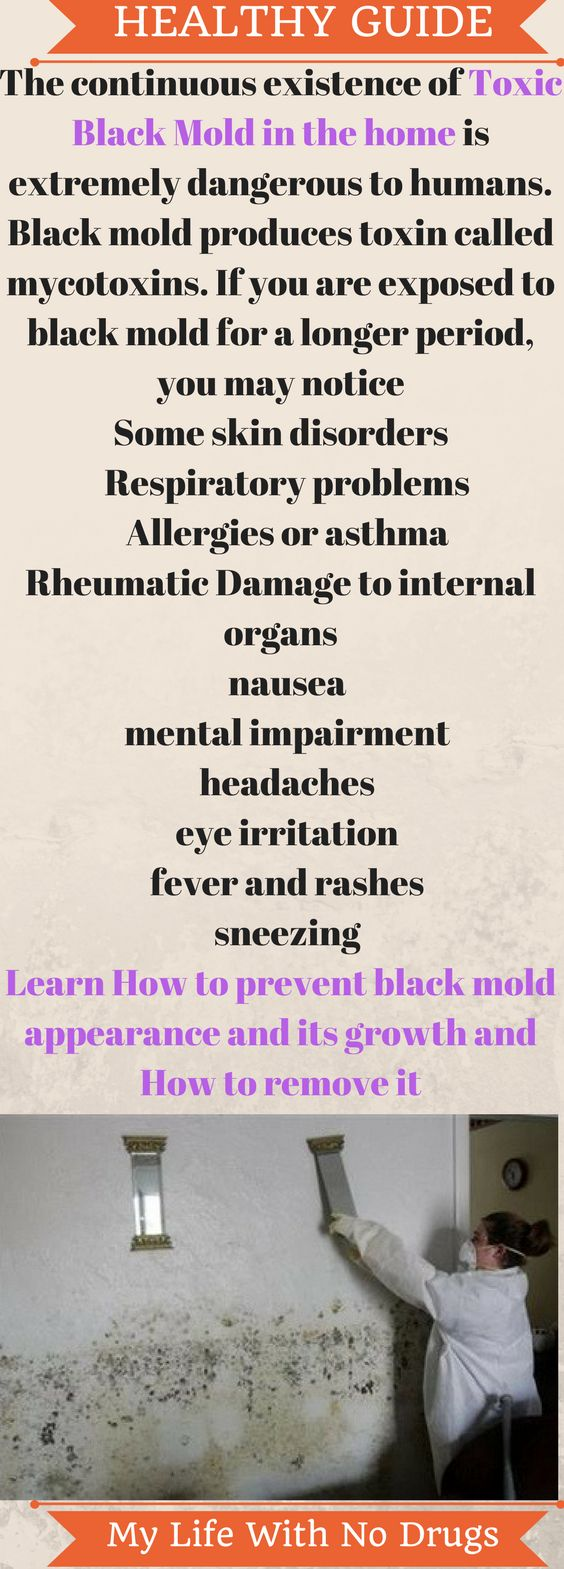 Black mold is dangerous here is how to remove it